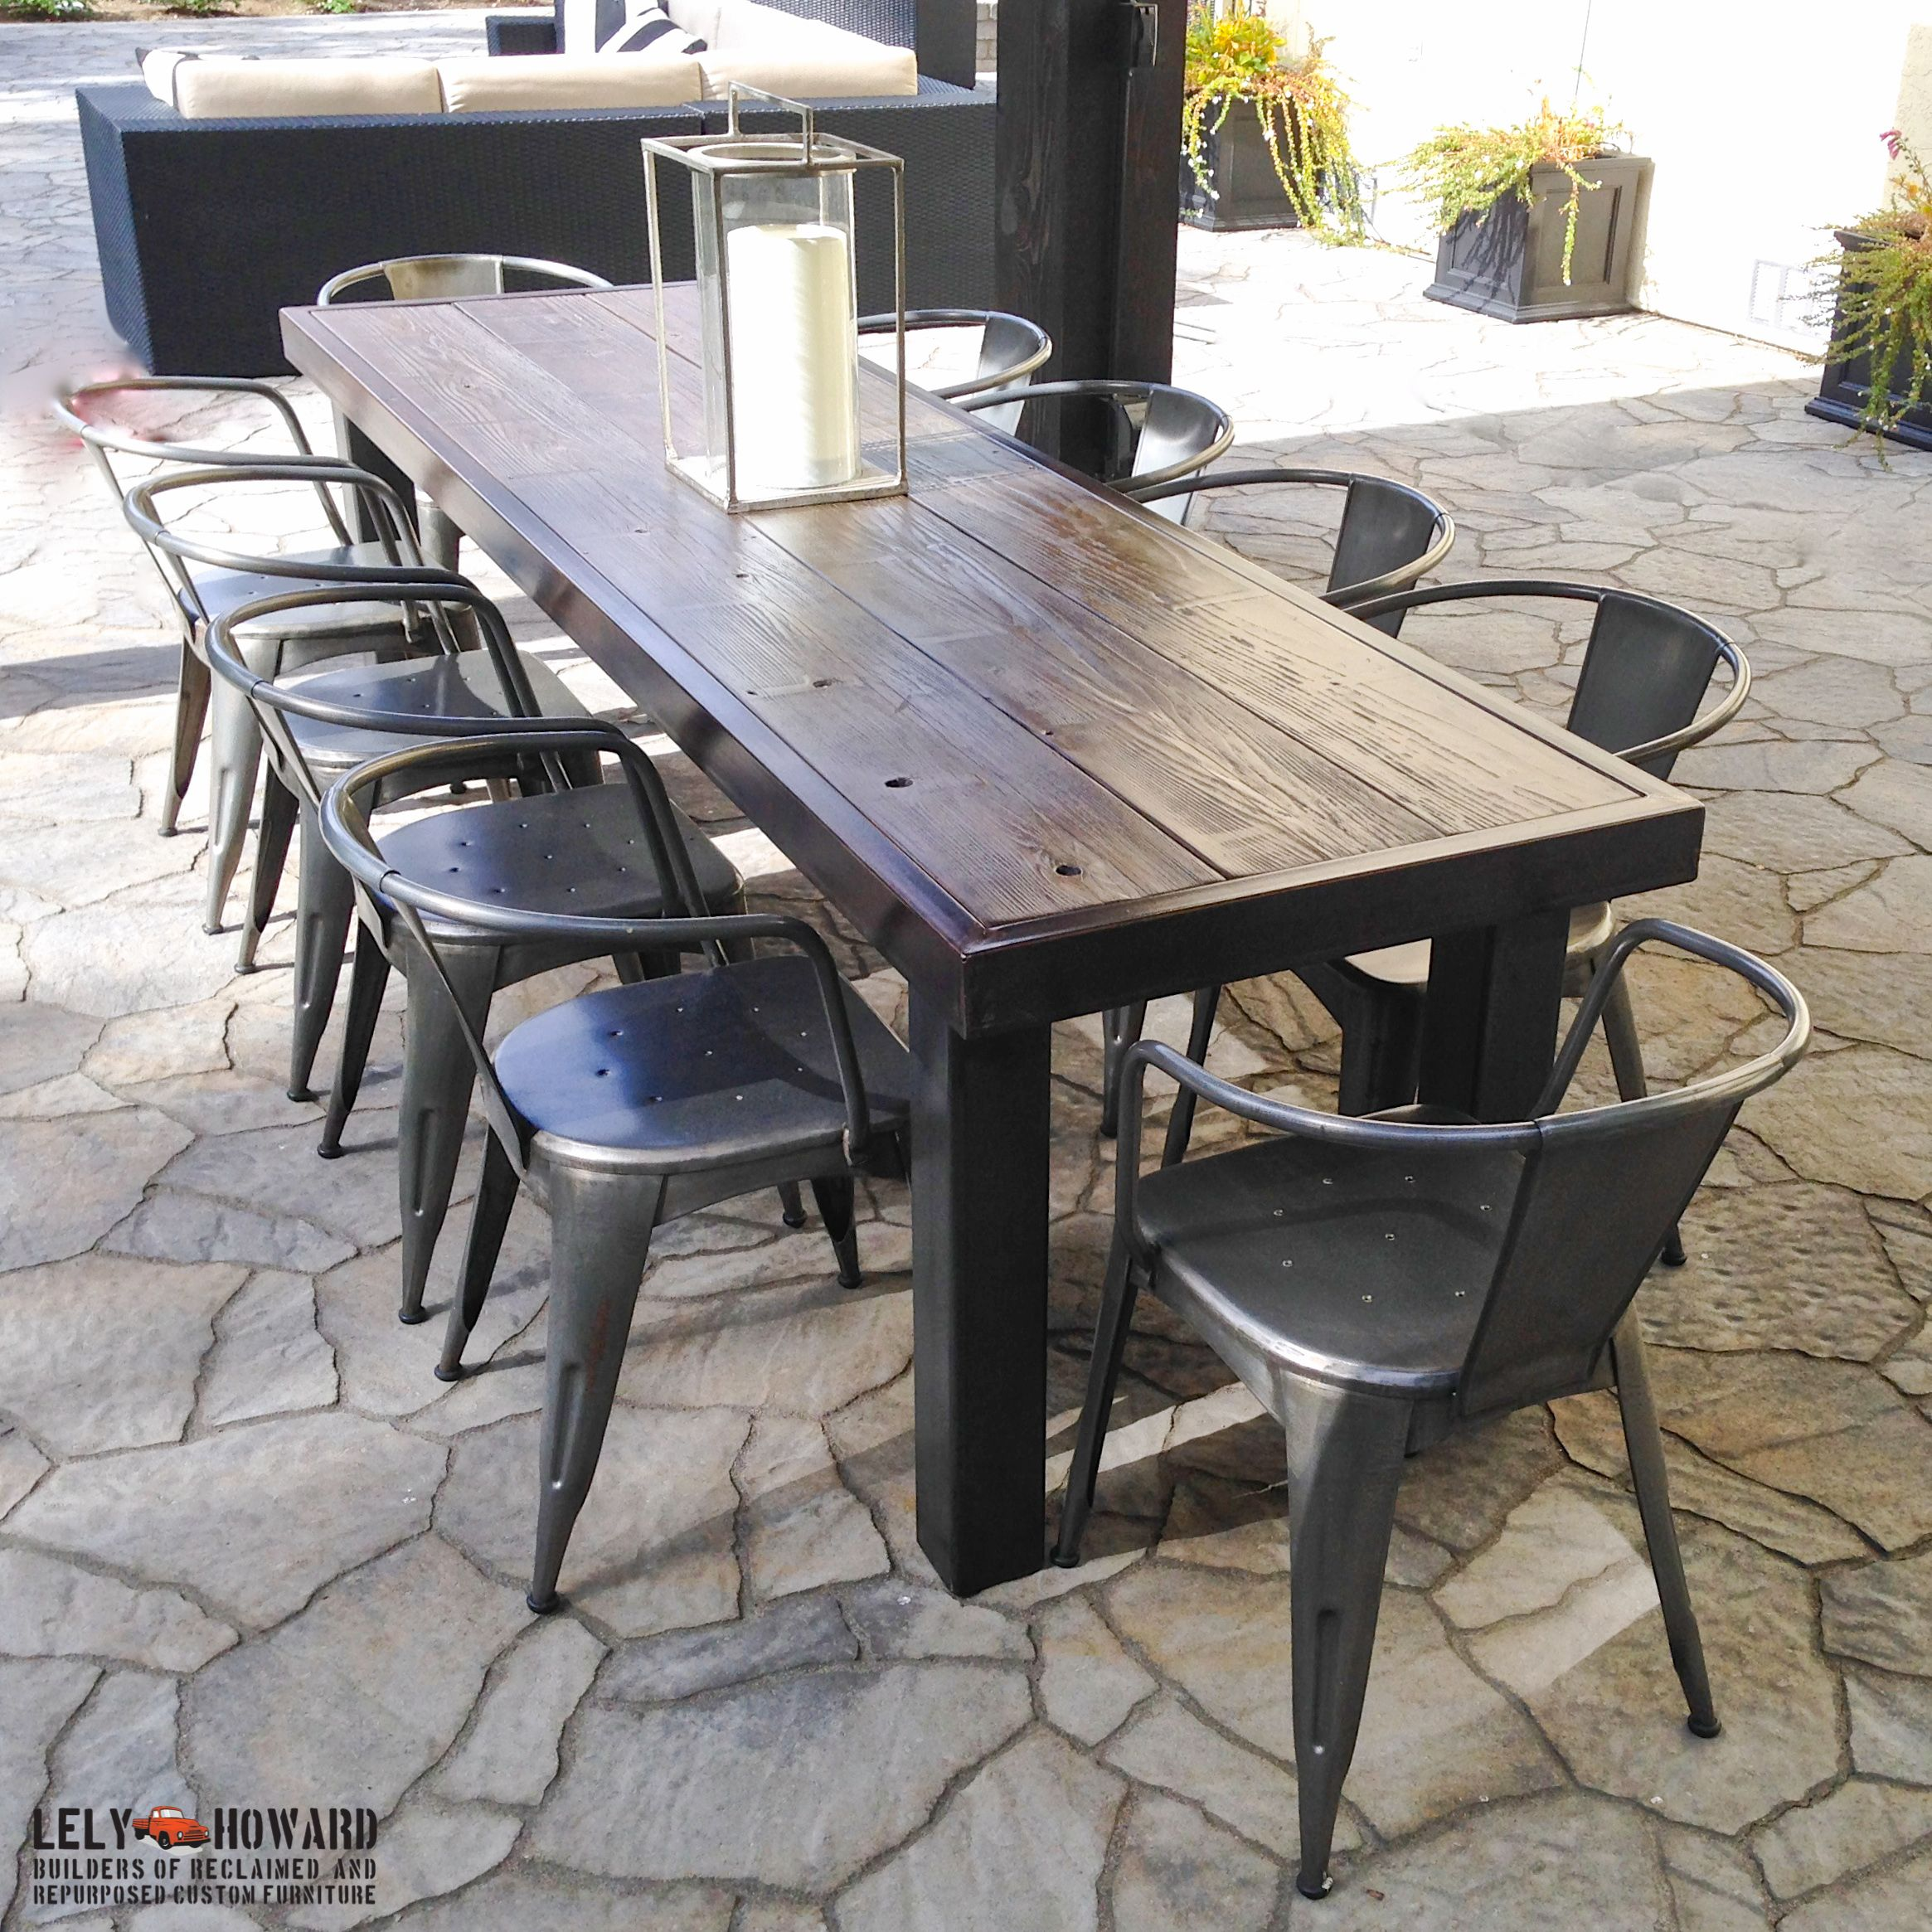 This Outdoor Dining Table Was Built Using An All Steel Frame And